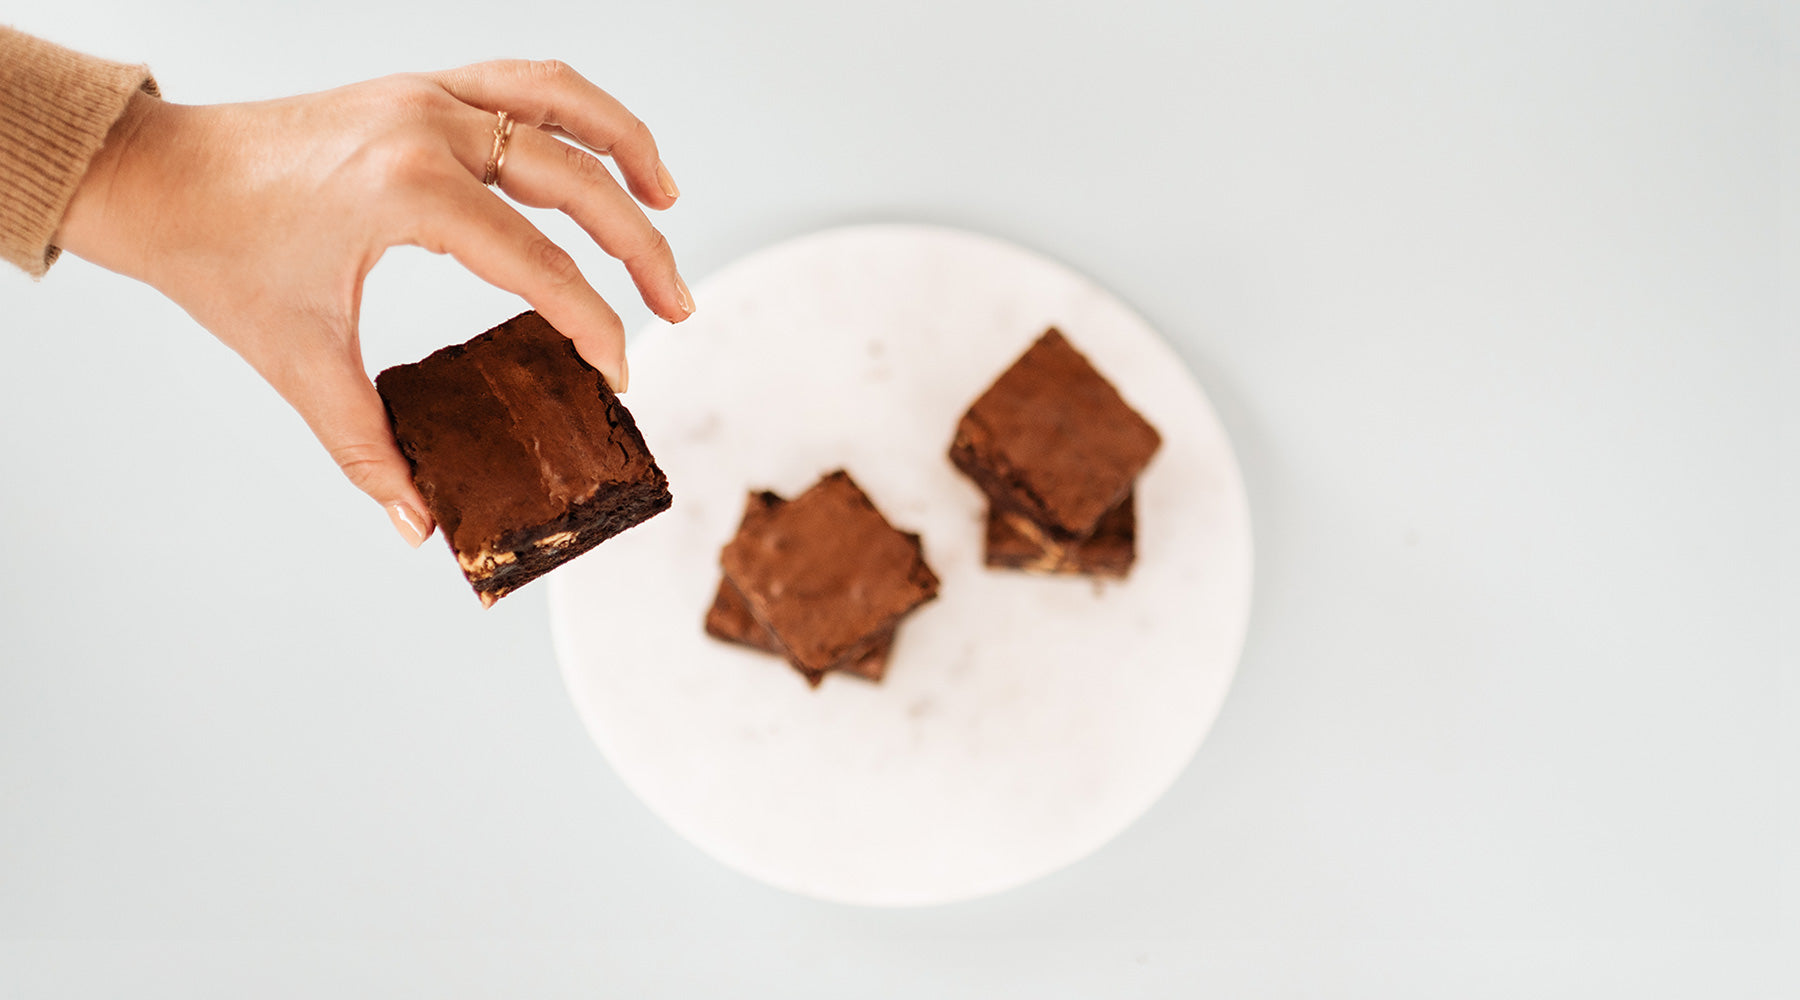 Hand holding brownies above a plate of brownies